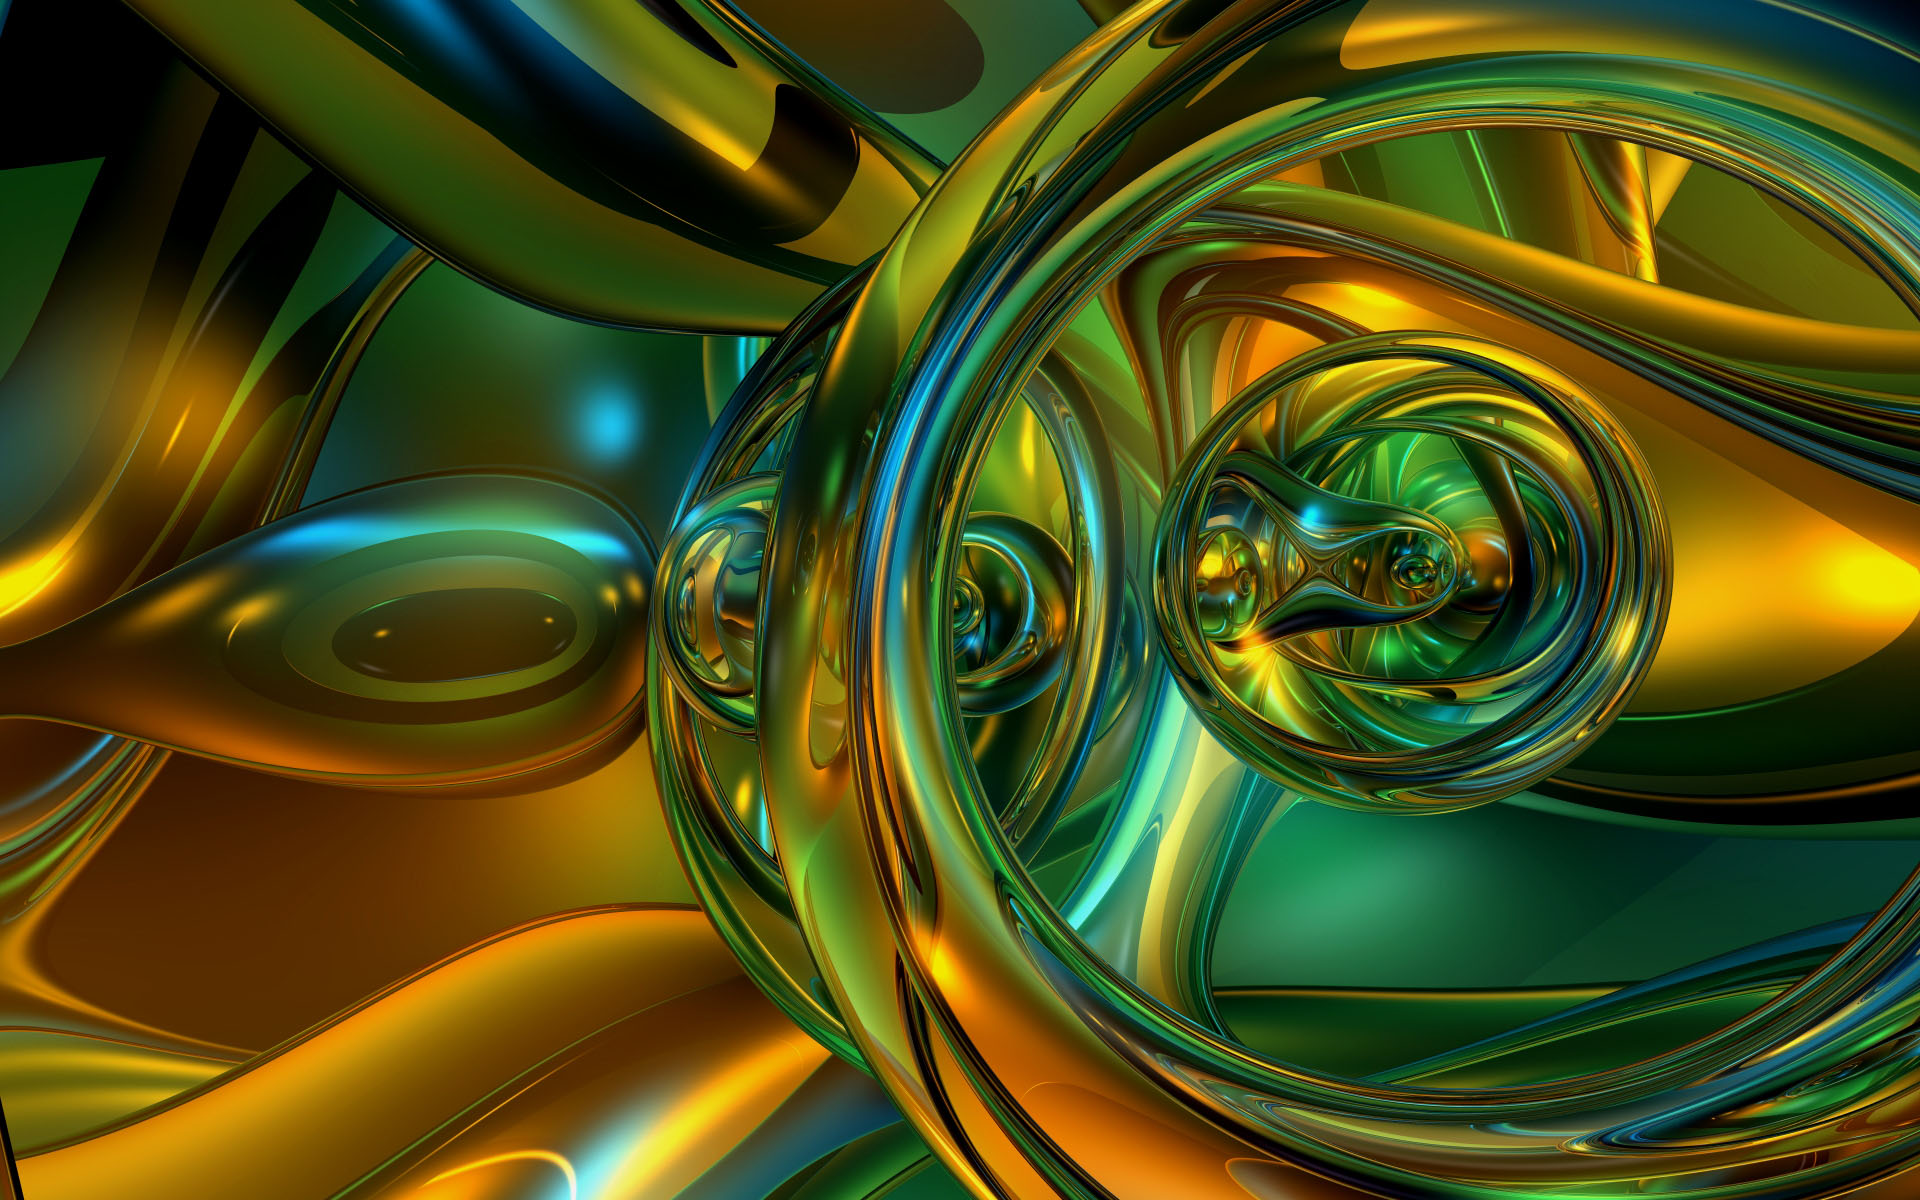 Abstract 3d wallpapers for 3d photo wallpaper